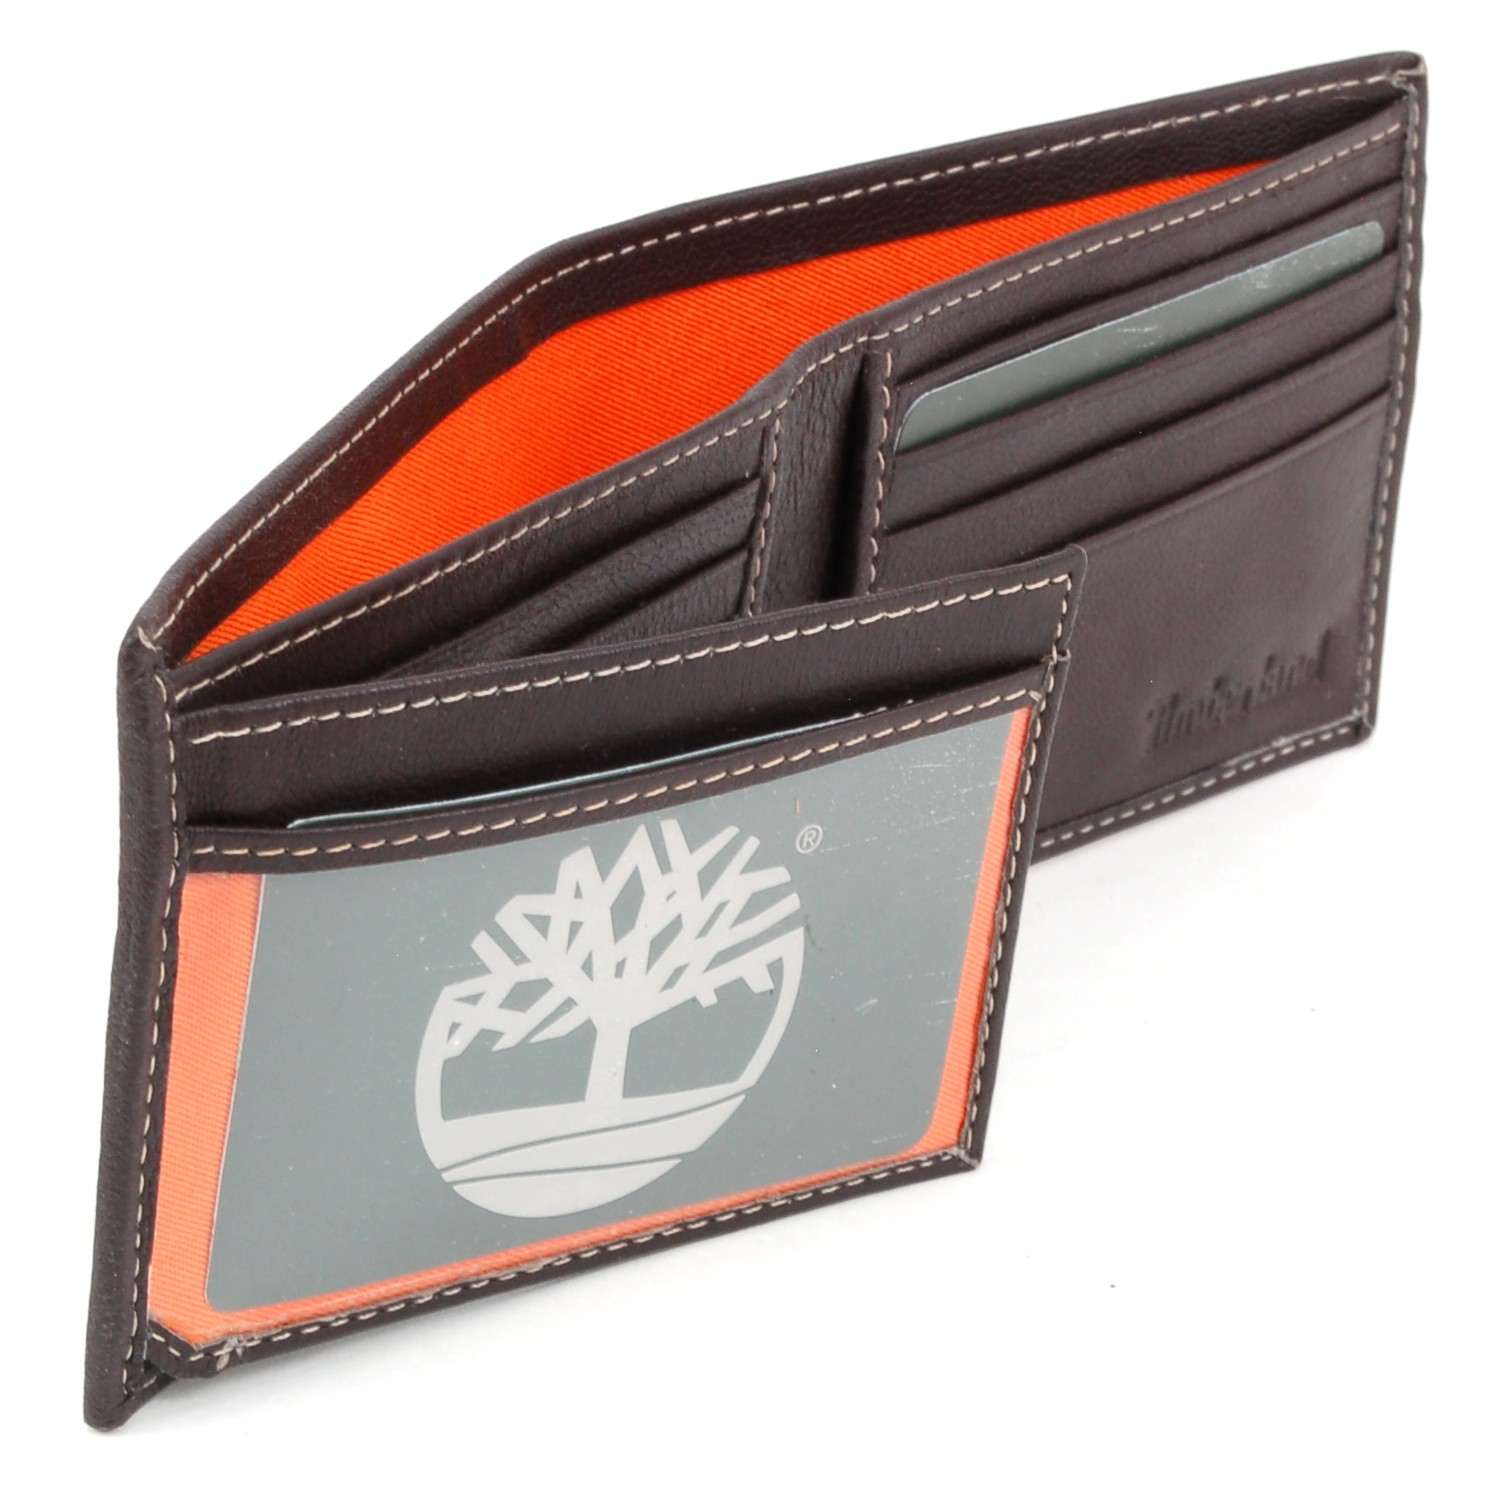 Timberland mens wallet commuter bifold real leather for 2 id window wallet